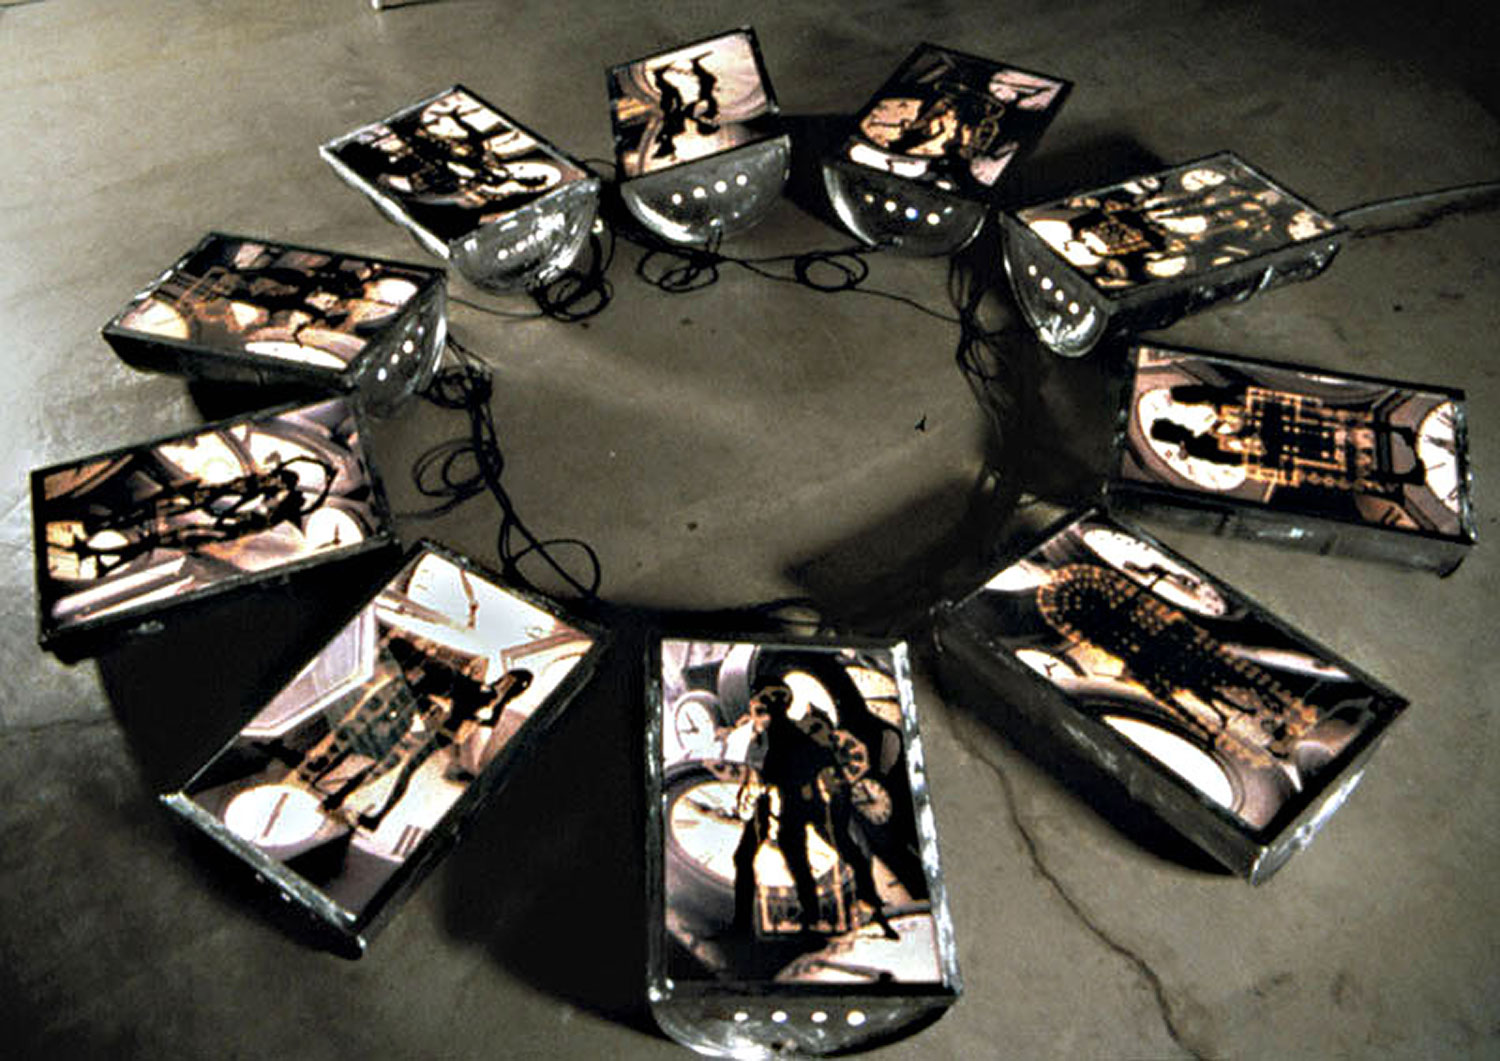 Chronos, 1999, installation view, color transparencies, 10 halved fifty-five gallon barrels (light box), 240 x 240<br><br>Ouranos covered and copulated with Gaia until their son Kronos became angered and castrated him, separating sky from earth and becoming known as the creator of time. The color transparencies overlay male and female figures with ten influential cathedrals and Arman clocks.